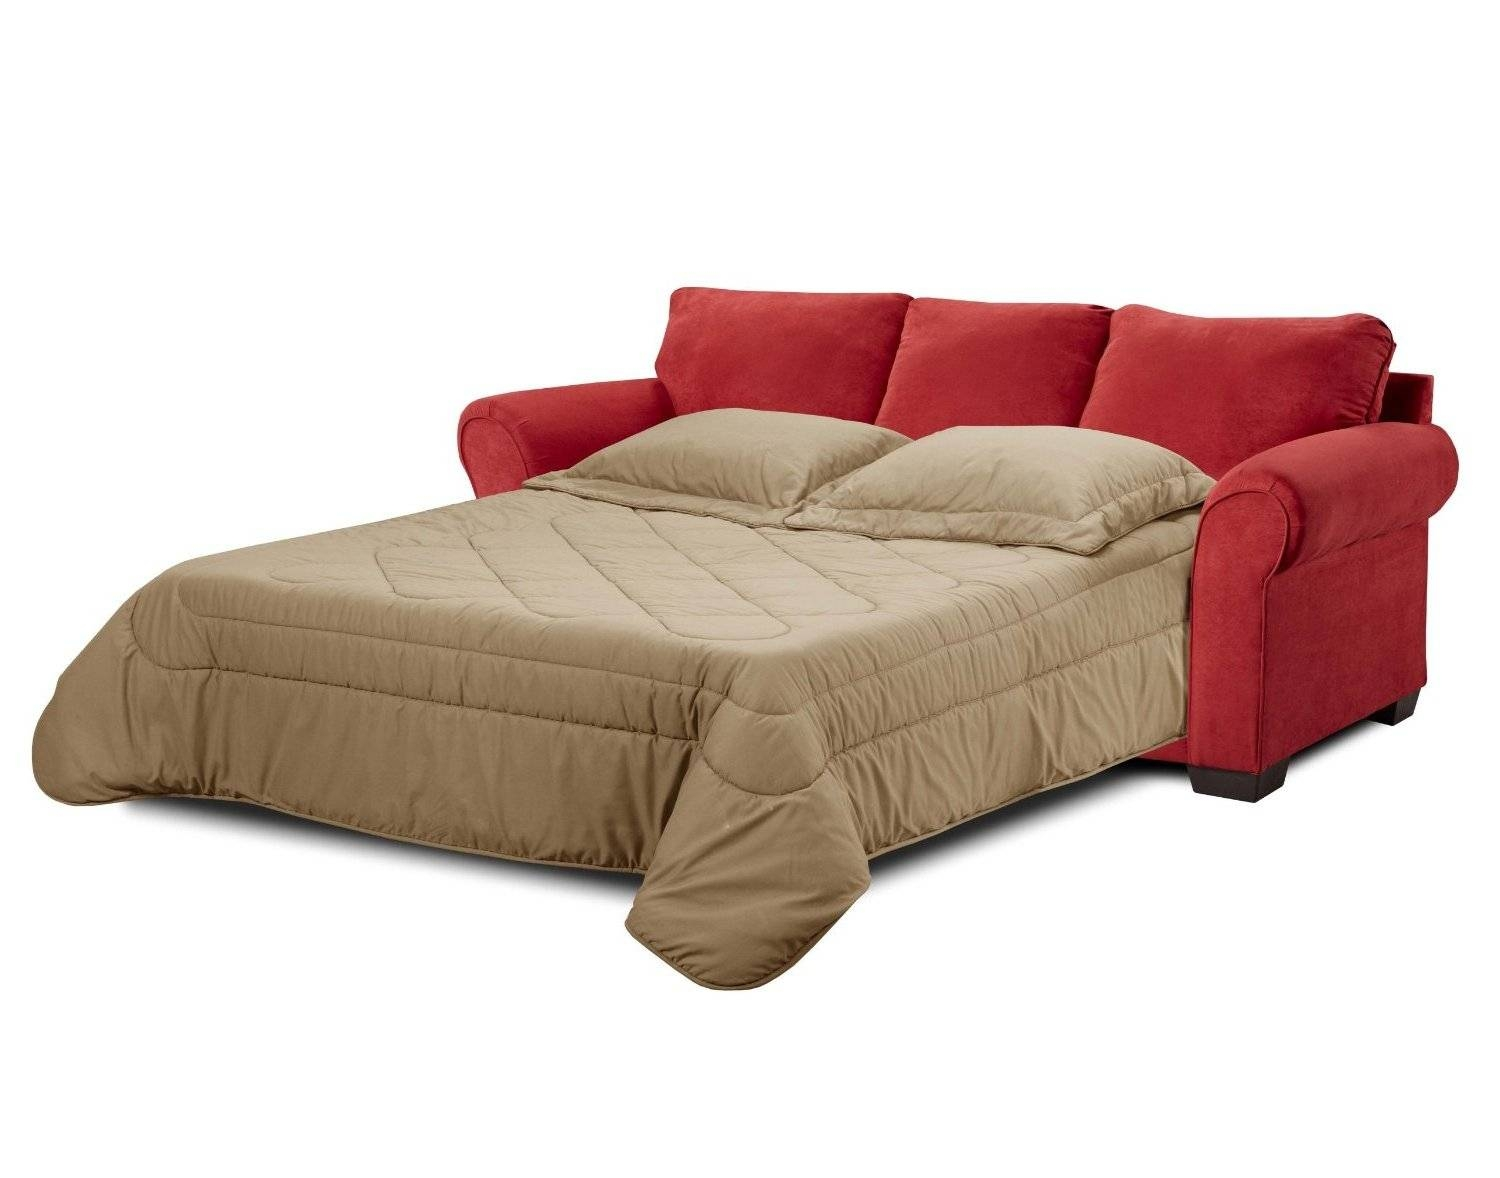 Ottoman Sofa Bed Sydney – Leather Sectional Sofa Pertaining To Cushion Sofa Beds (View 15 of 30)